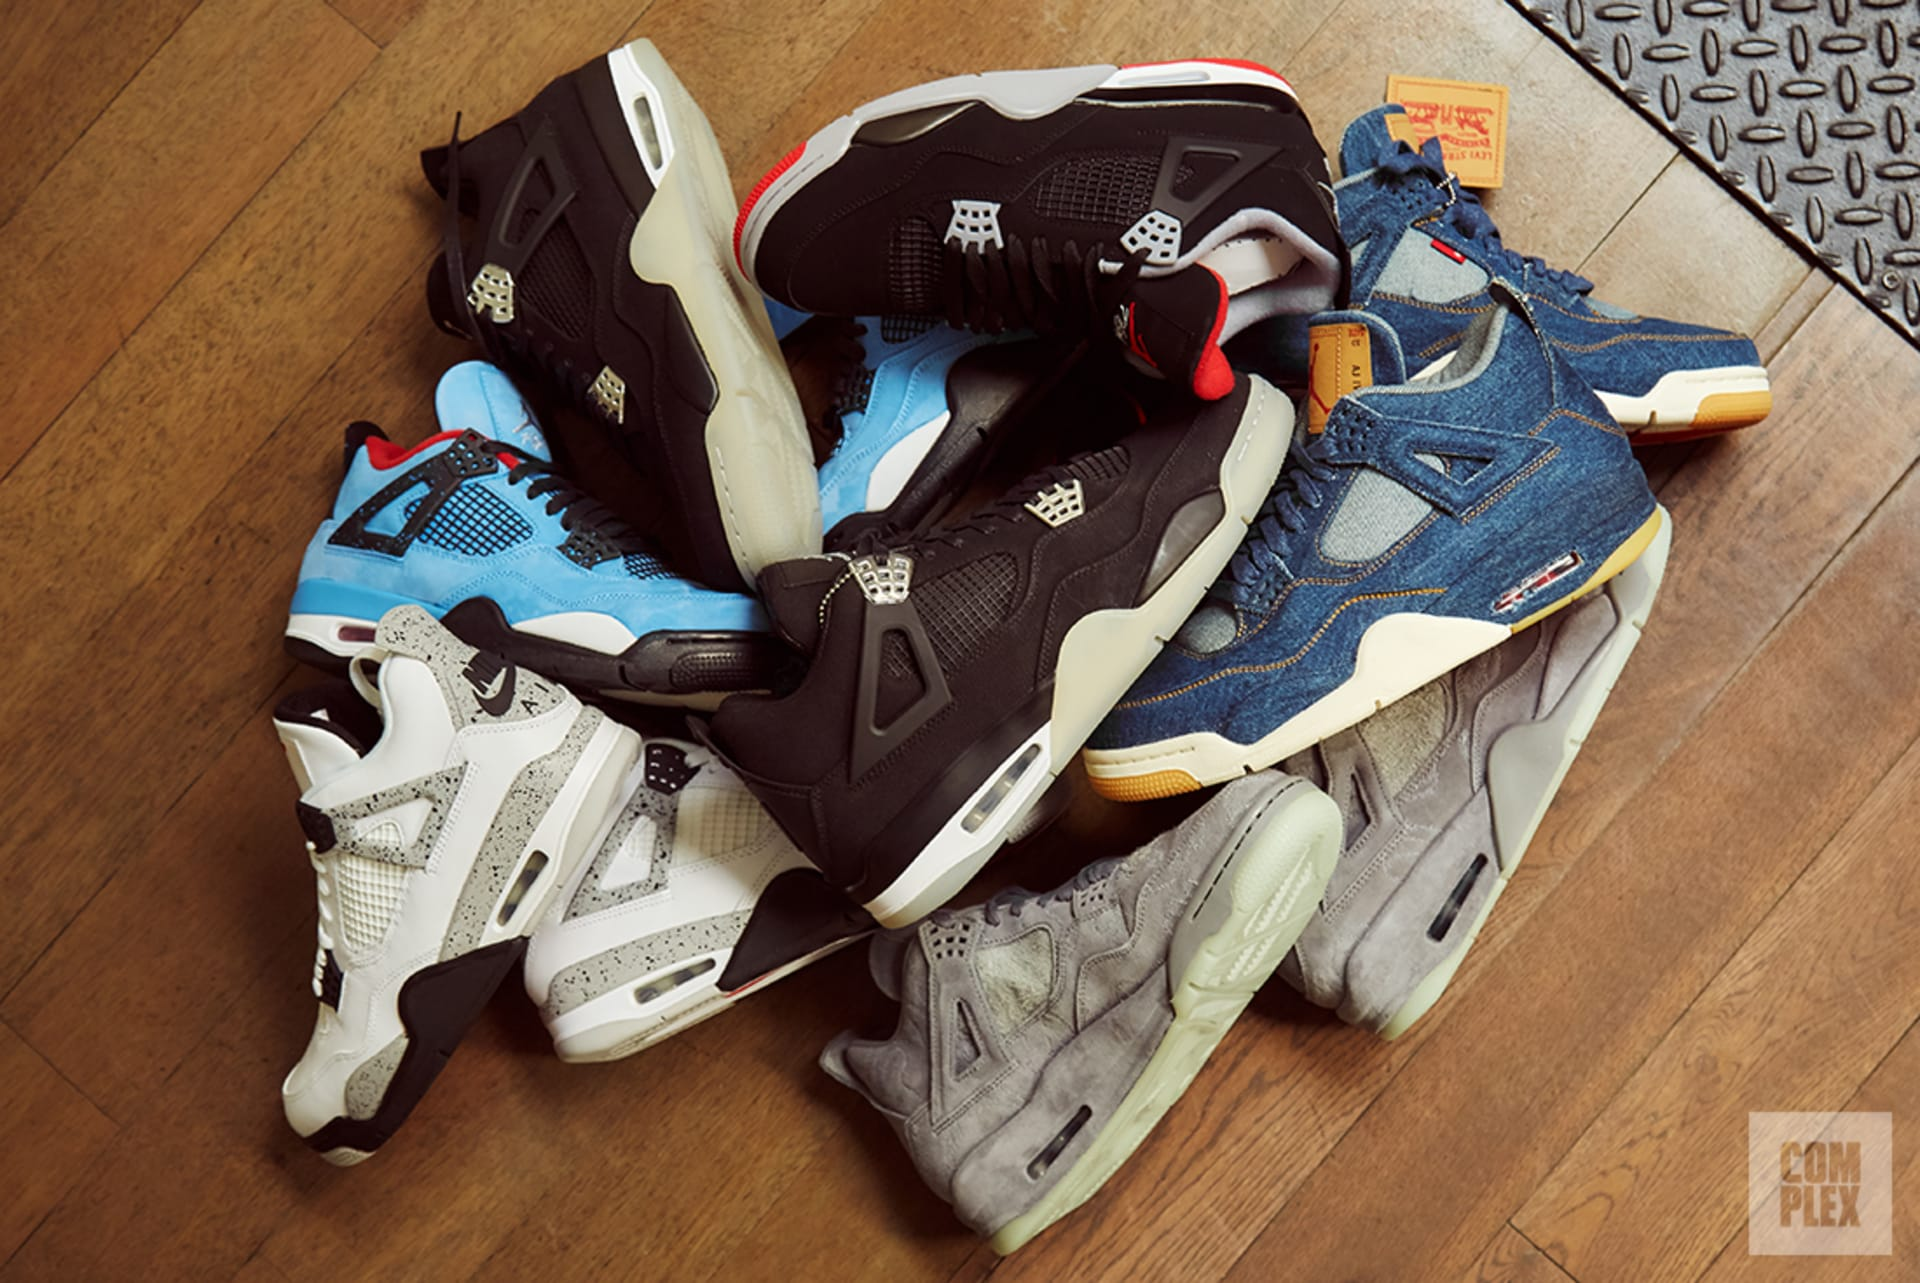 fd1c0f46ce5f Air Jordan 4. Image via Complex Original David Cabrera. All sneakers  courtesy of Stadium Goods.